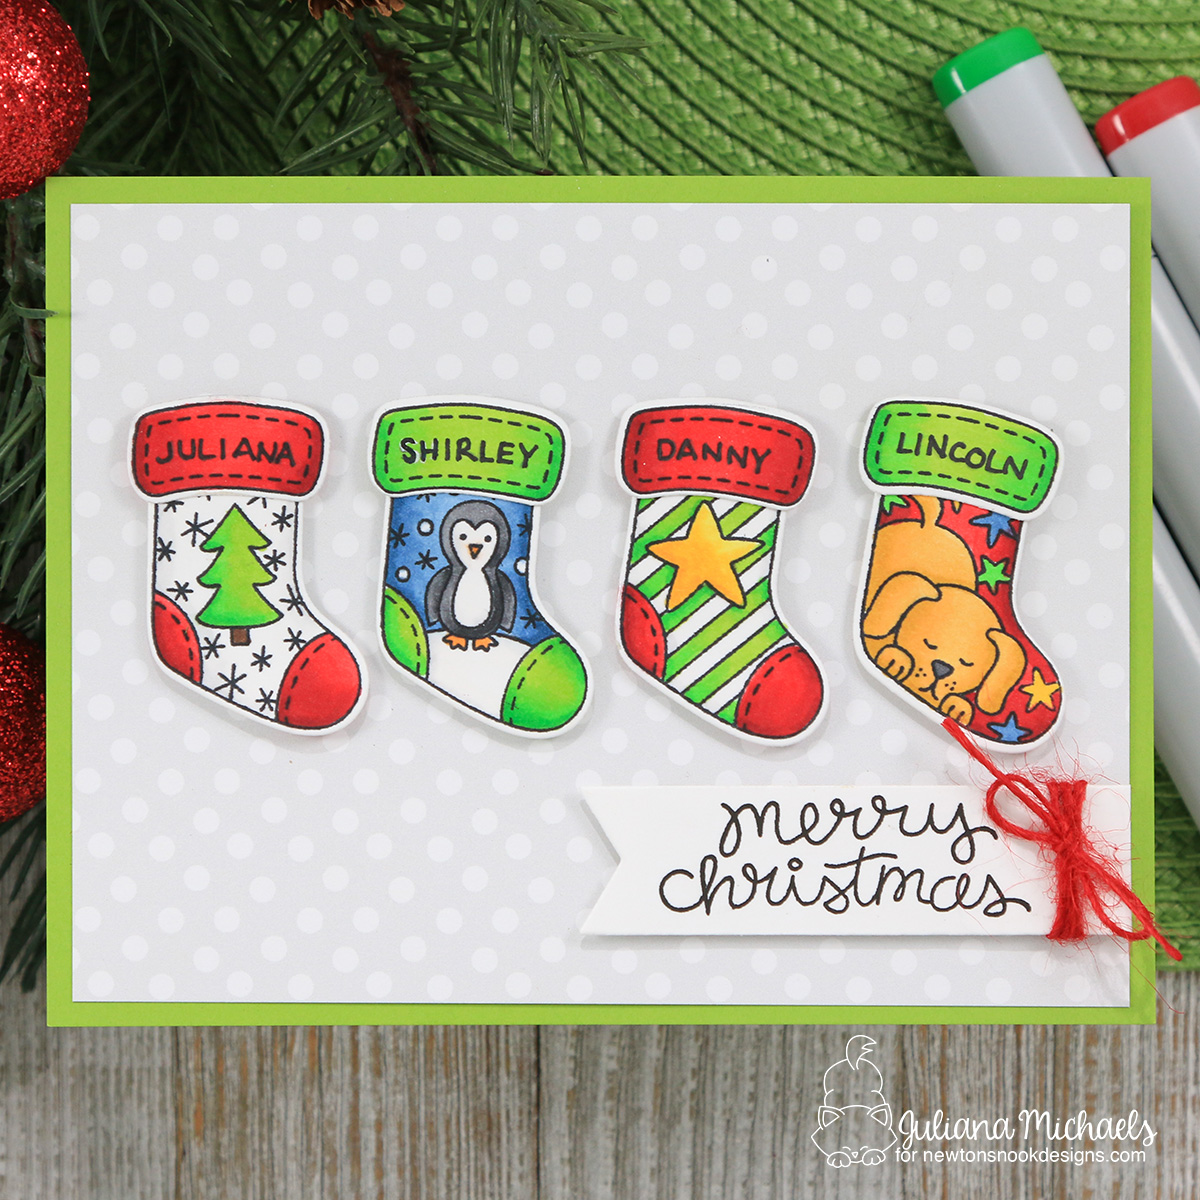 merry christmas stockings card by juliana michaels featuring newtons nook designs holiday stockings stamp set - Michaels Christmas Stockings